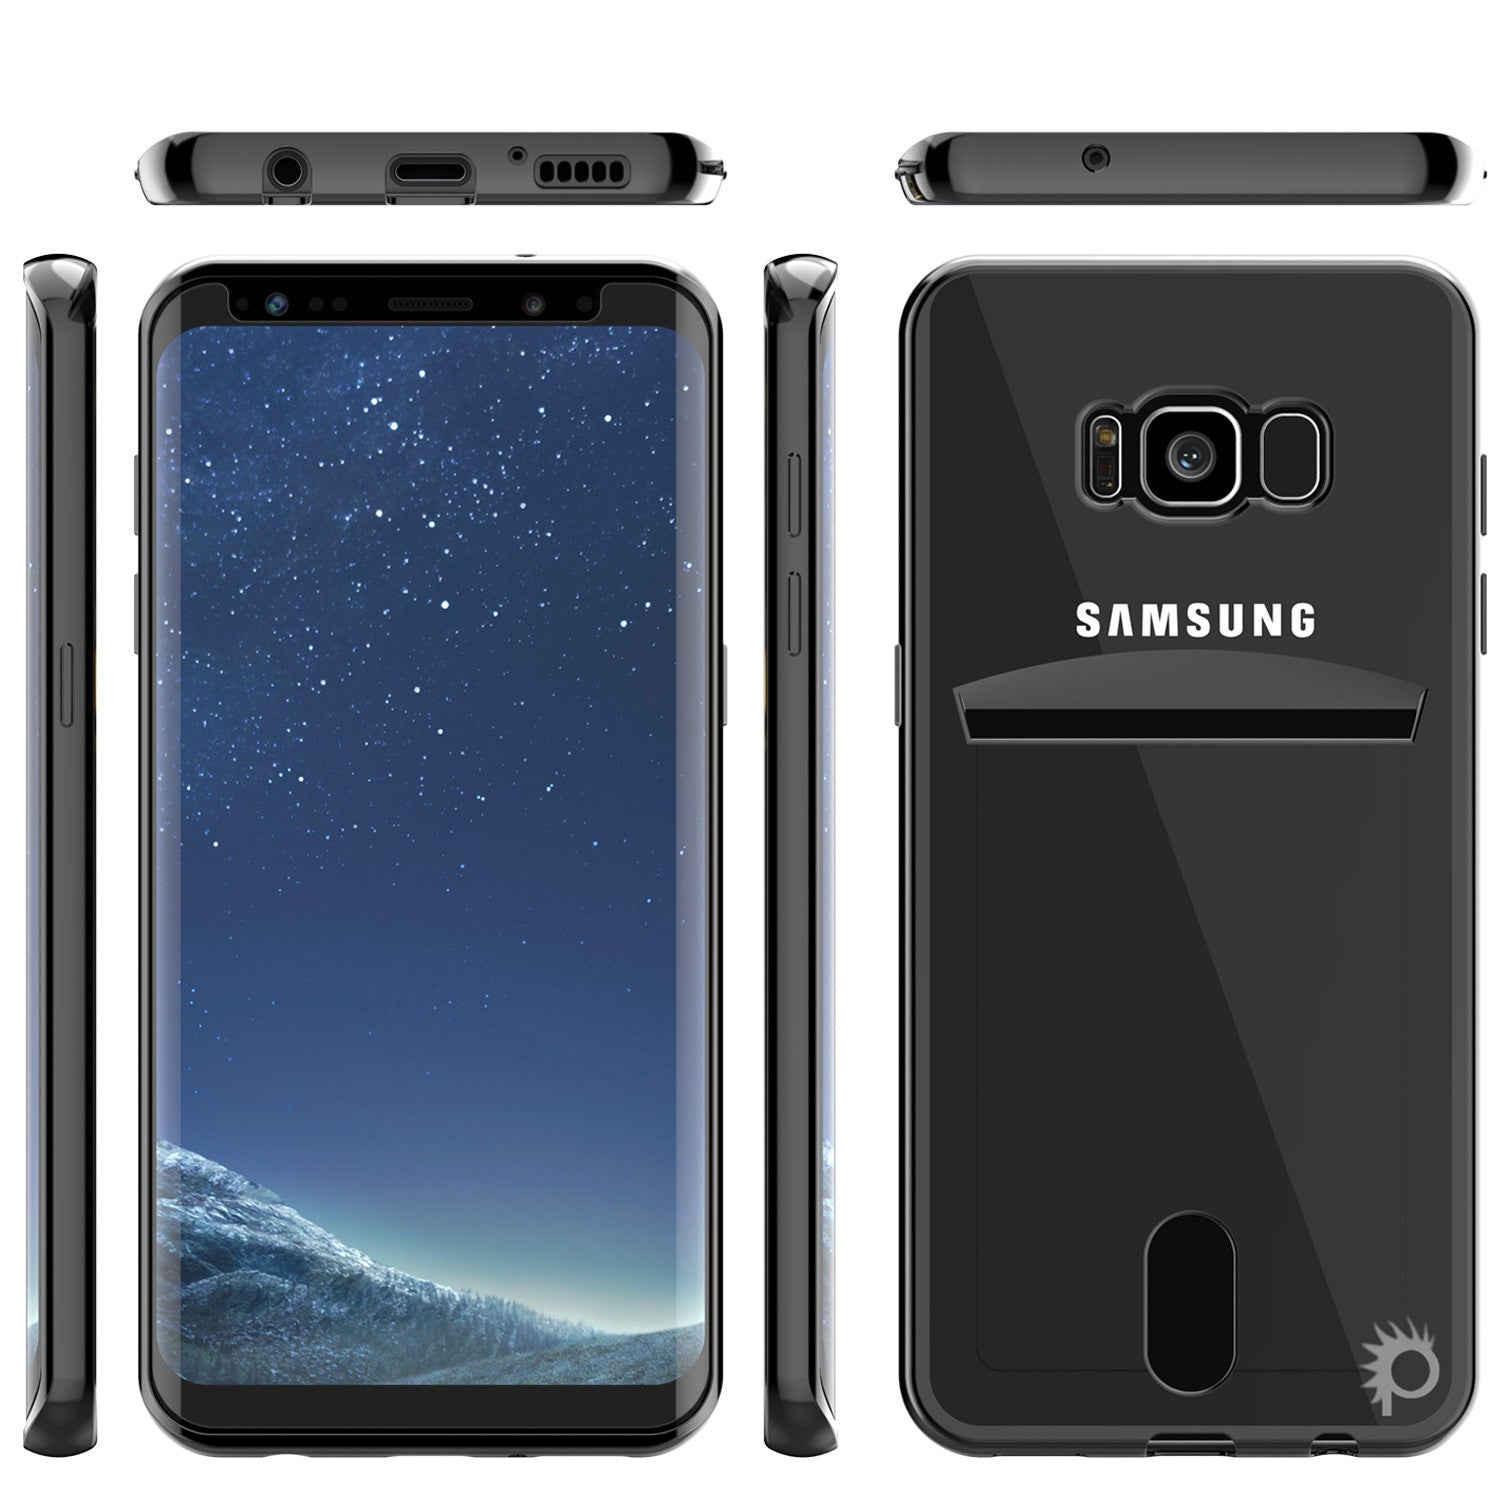 Galaxy S8 Case, PUNKCASE® LUCID Black Series | Card Slot | SHIELD Screen Protector | Ultra fit